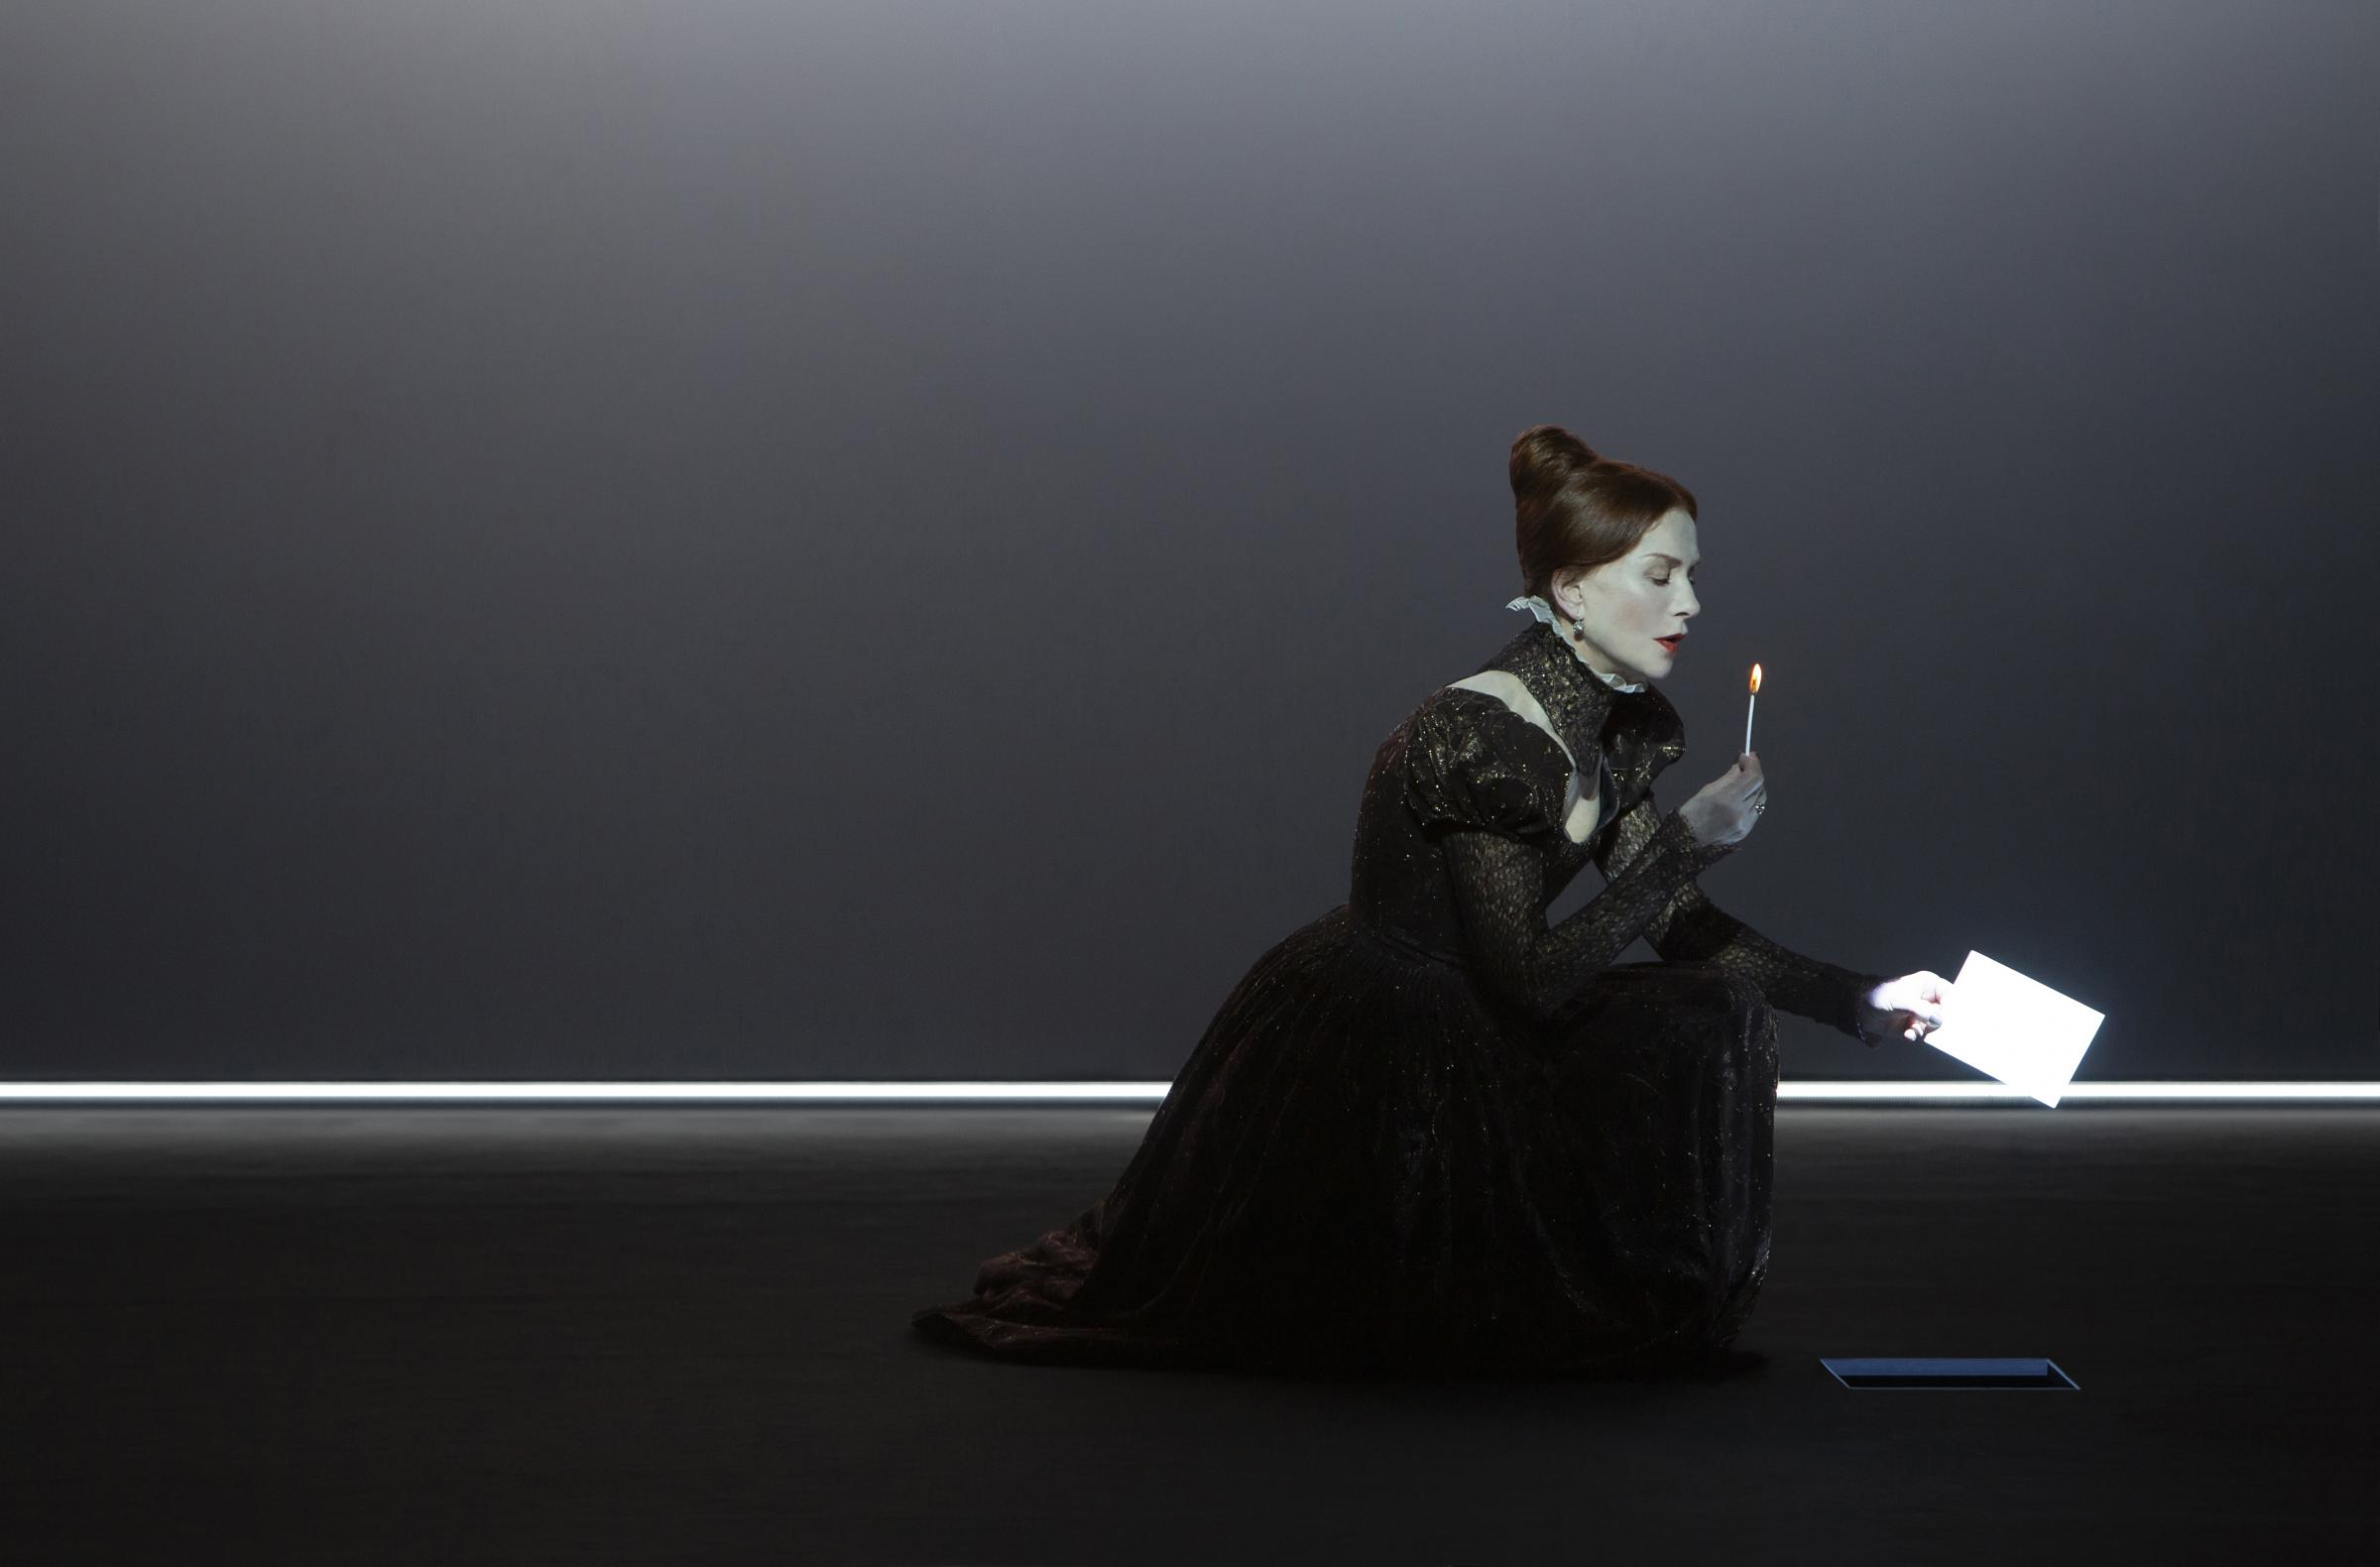 Review: Isabelle Huppert's spellbinding Mary, Queen of Scots